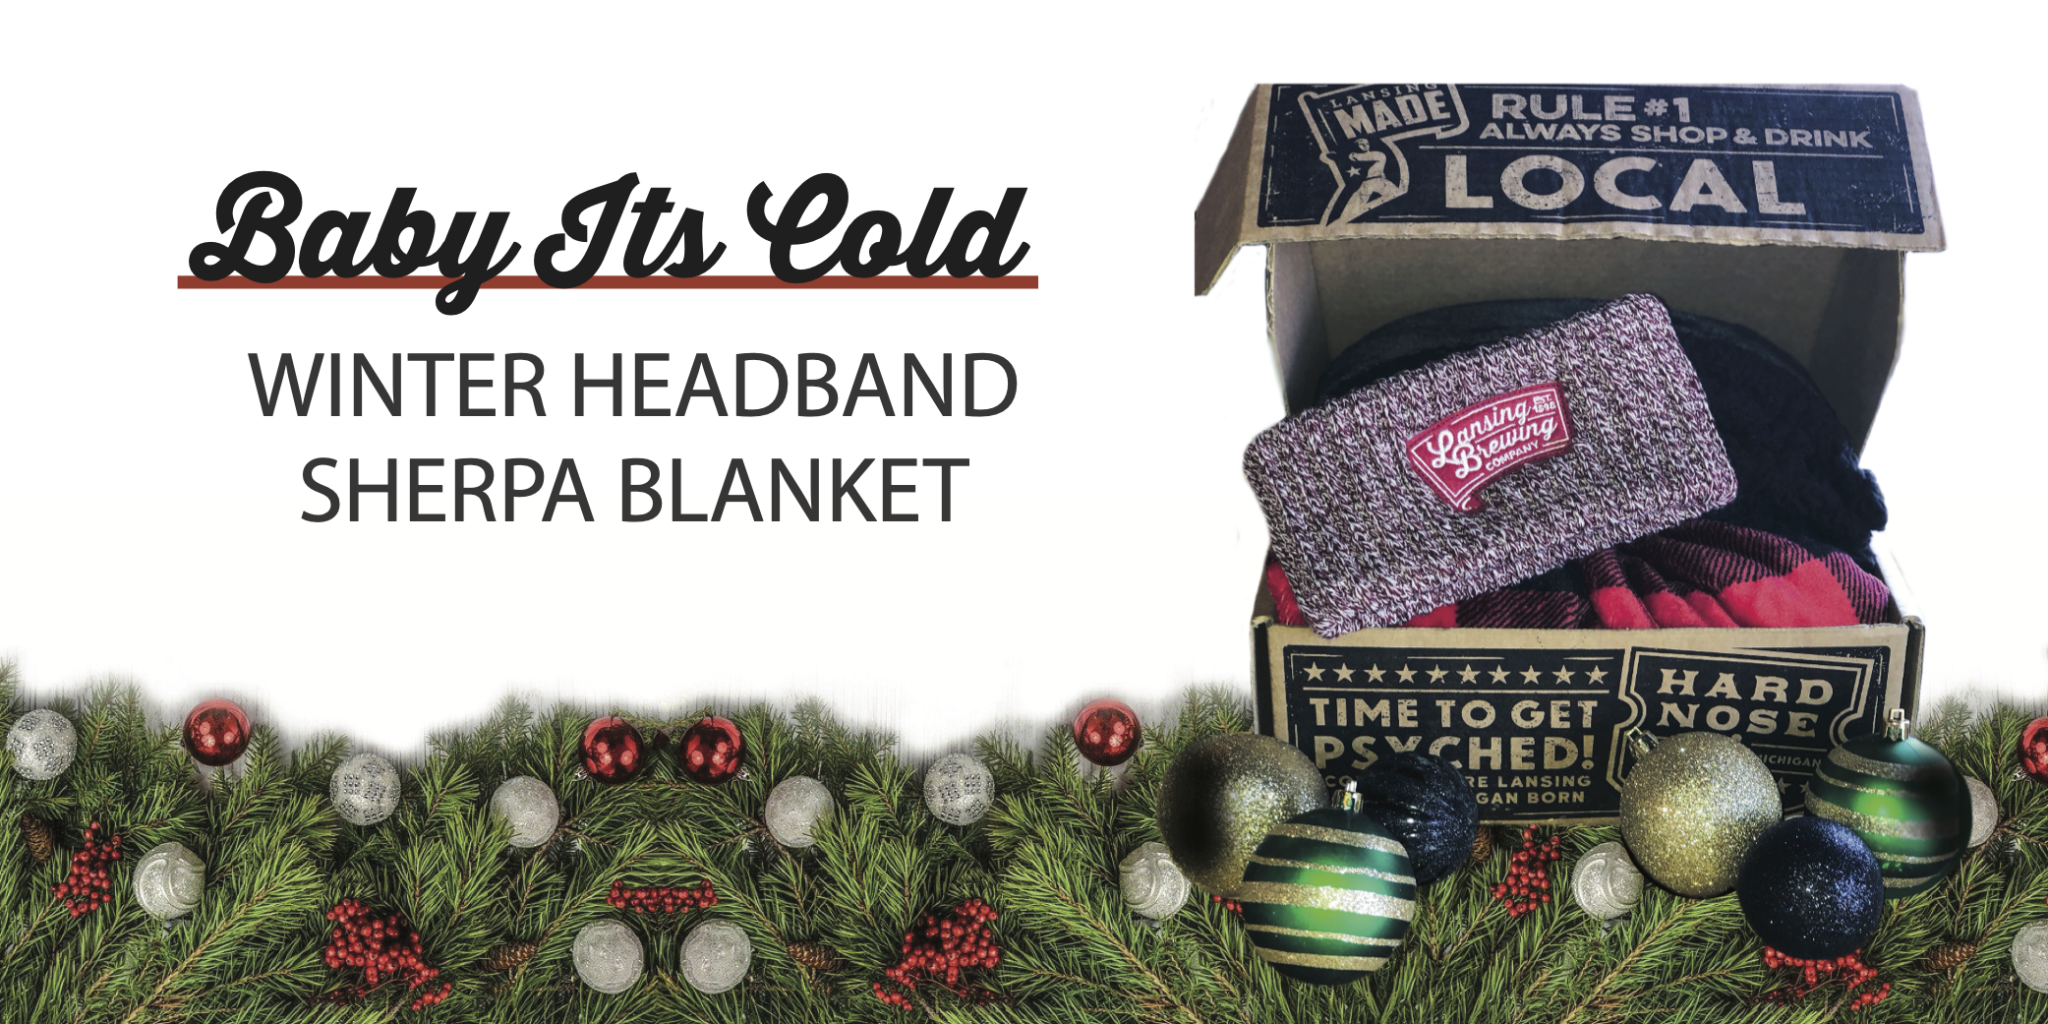 Holiday Gift Boxes at LBC. Winter headband and sherpa blanket